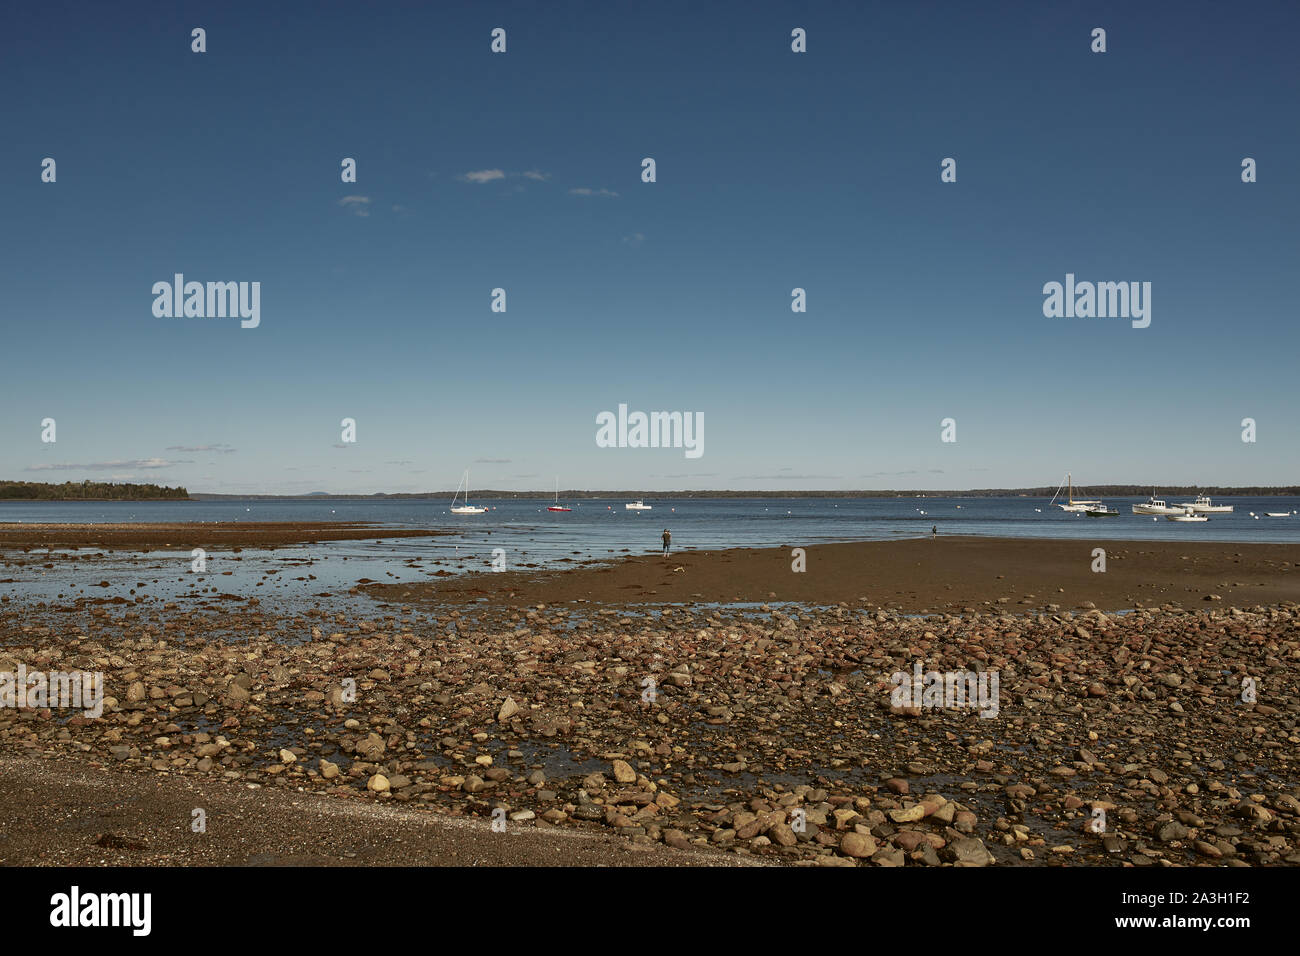 A cool Fall day in Lincolnville Beach off the coast of Penobscot Bay in Lincolnville, Maine. Stock Photo